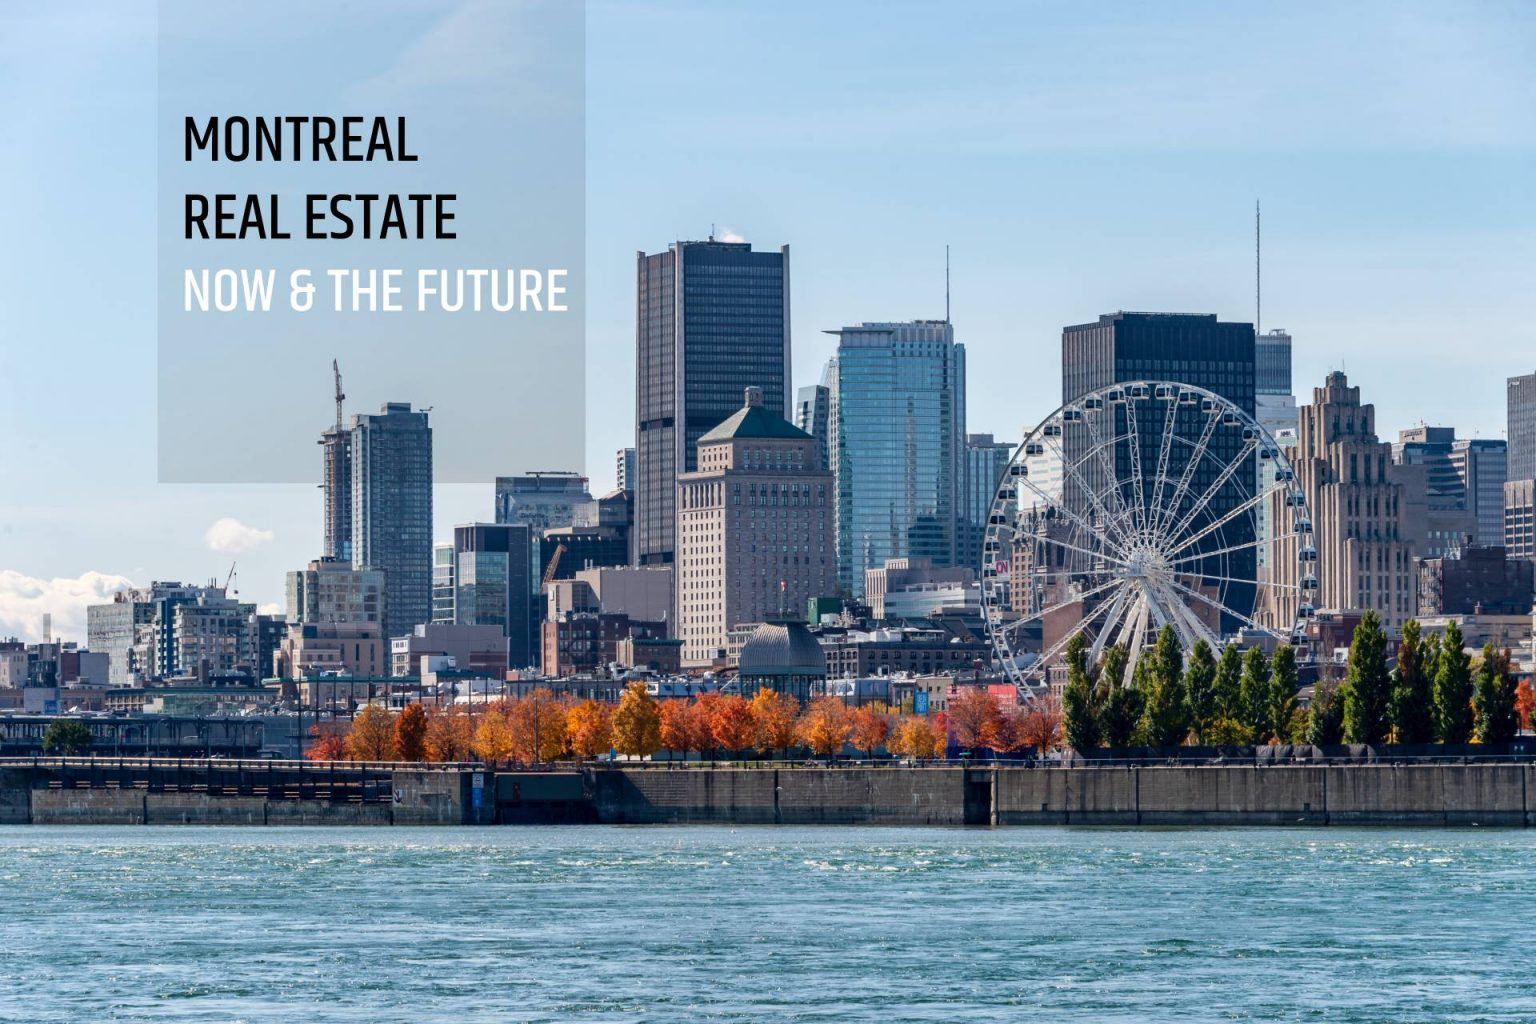 montreal_real_estate_now_future_feature_image